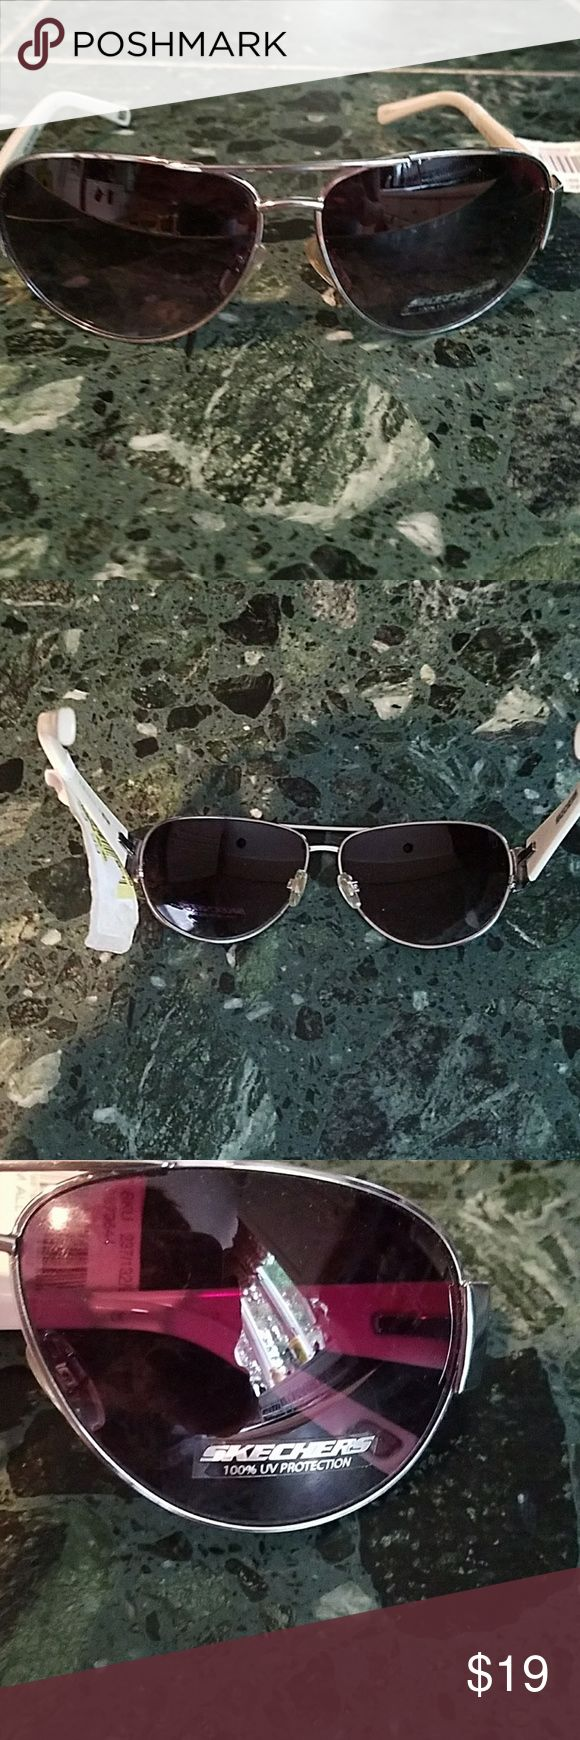 Sketchers sunglasses In good condition. Never used. Tiny scratches in lenses not bad at all. Tag a little old and ripped. Found in my closet. Skechers Accessories Glasses